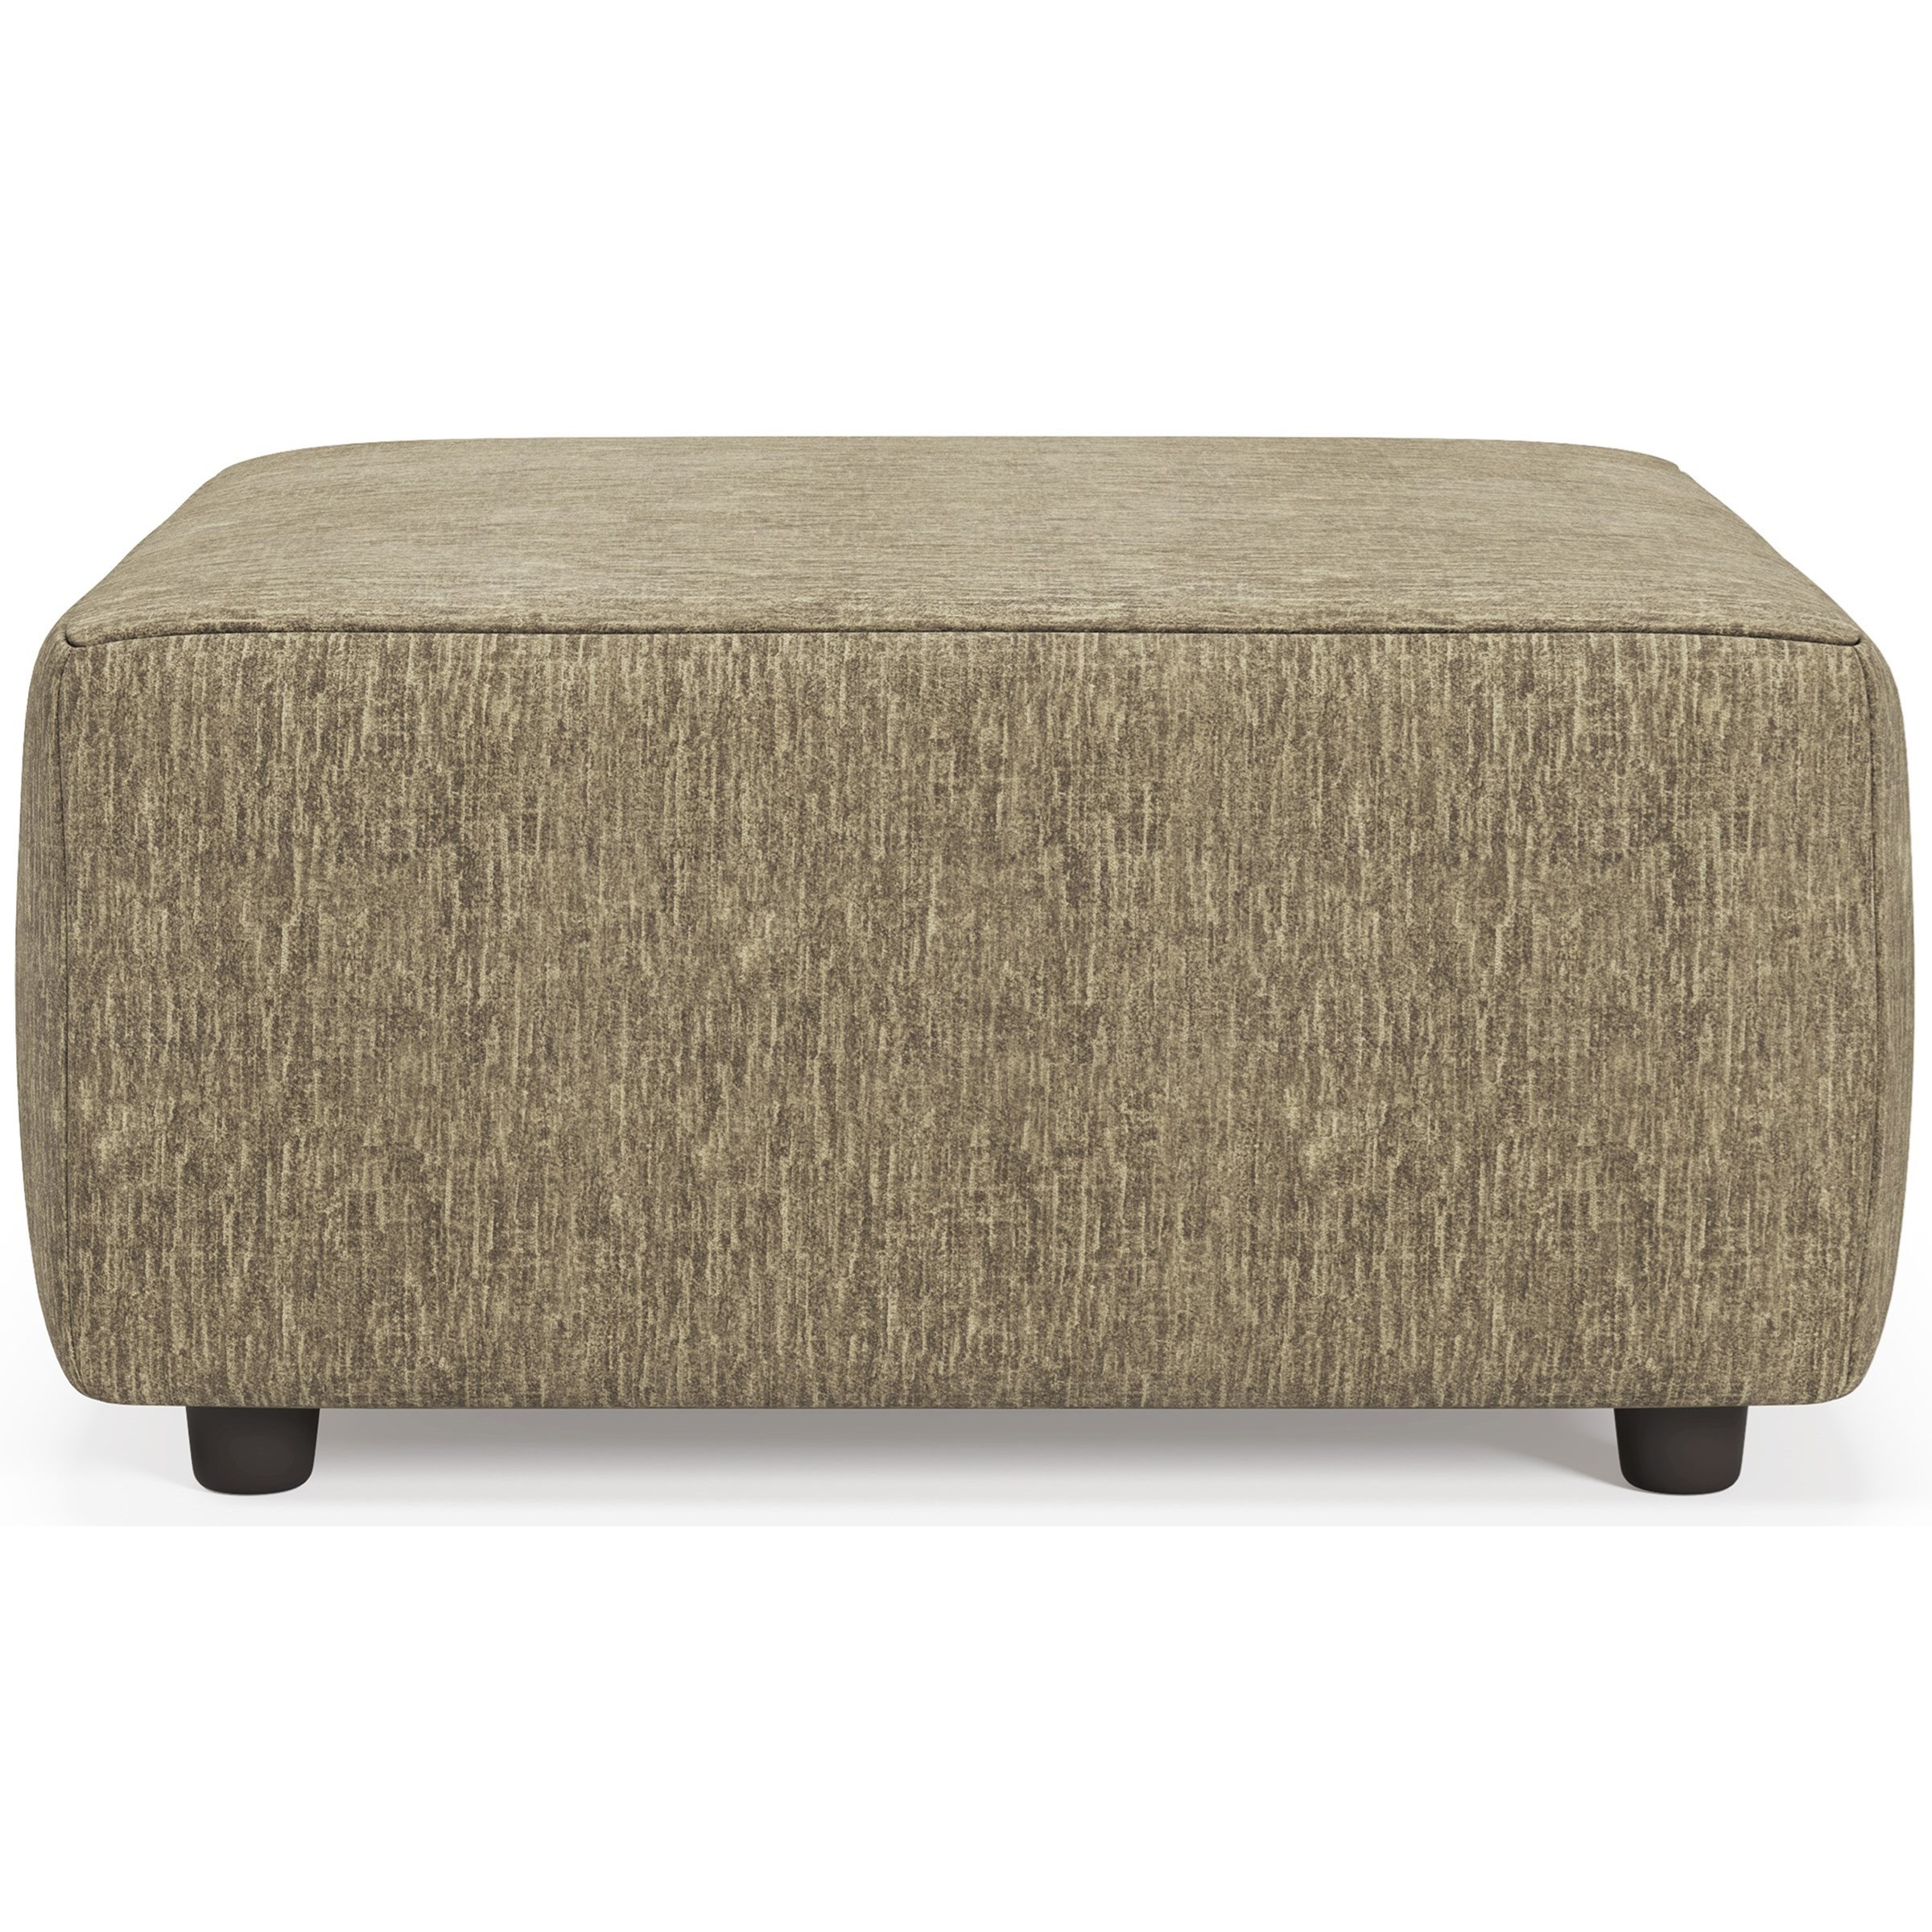 Hoylake Ottoman by Signature Design by Ashley at Beck's Furniture